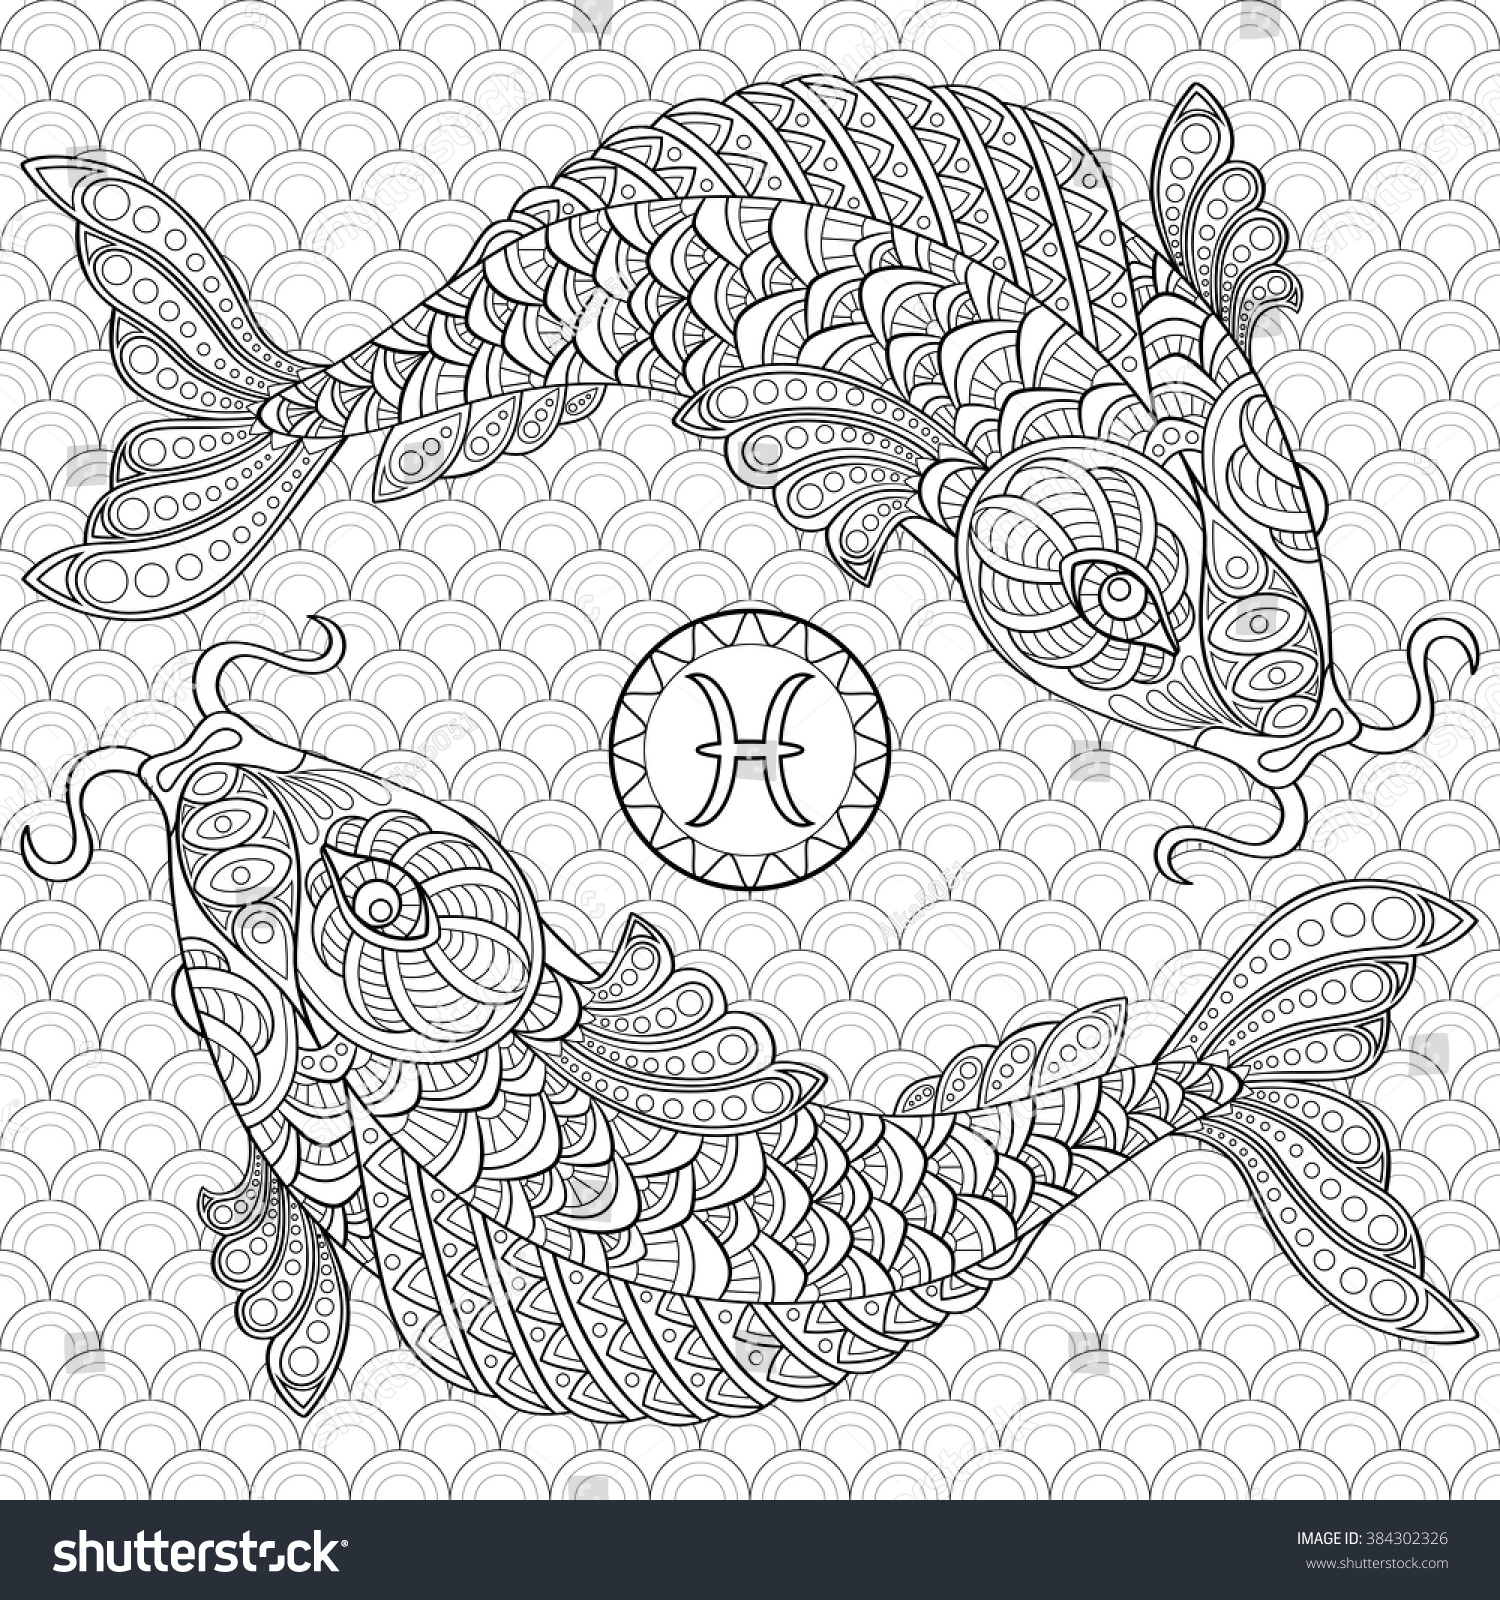 Pisces Koi Fish Chinese Carps Adult Antistress Coloring